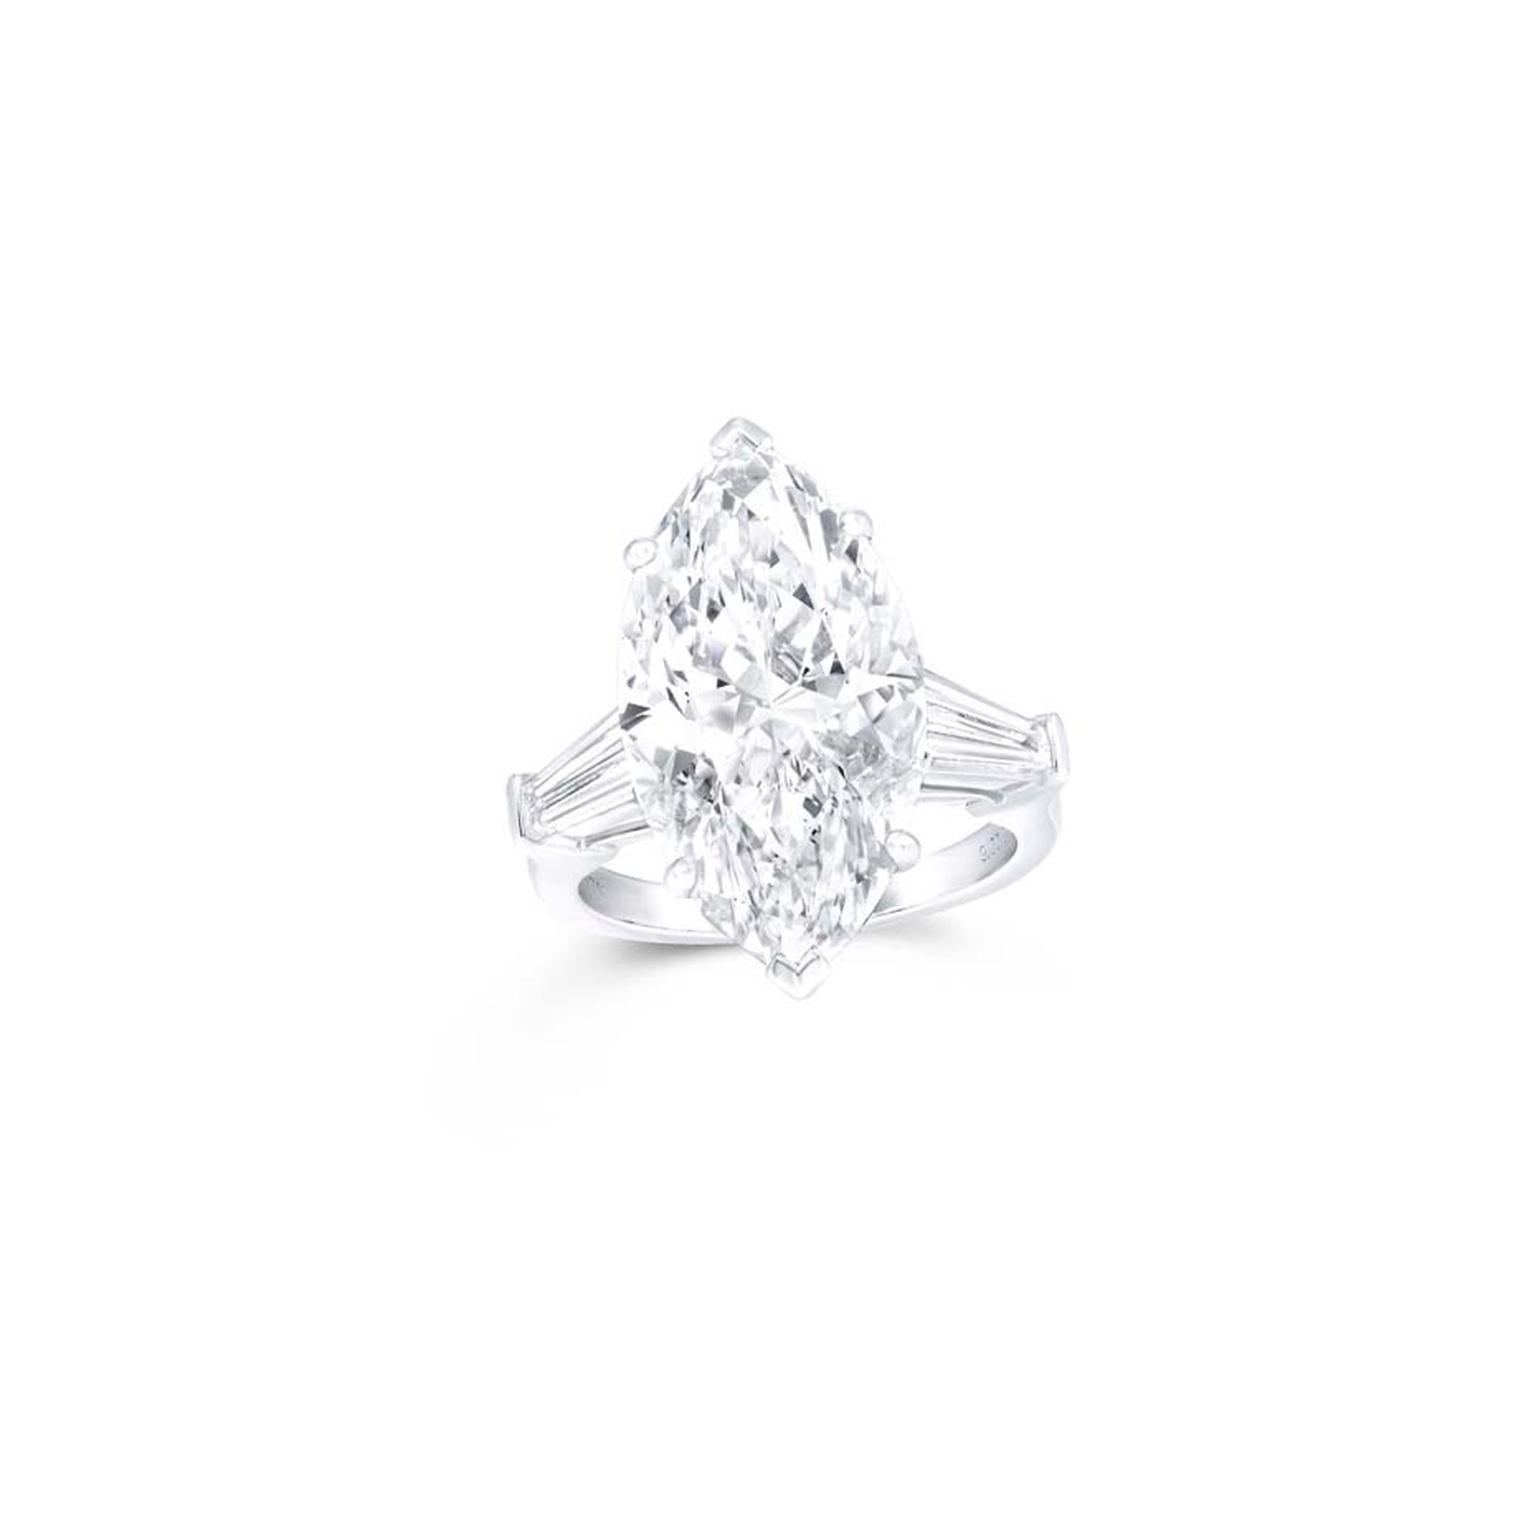 Graff jewellery marquise-cut promise diamond engagement ring.